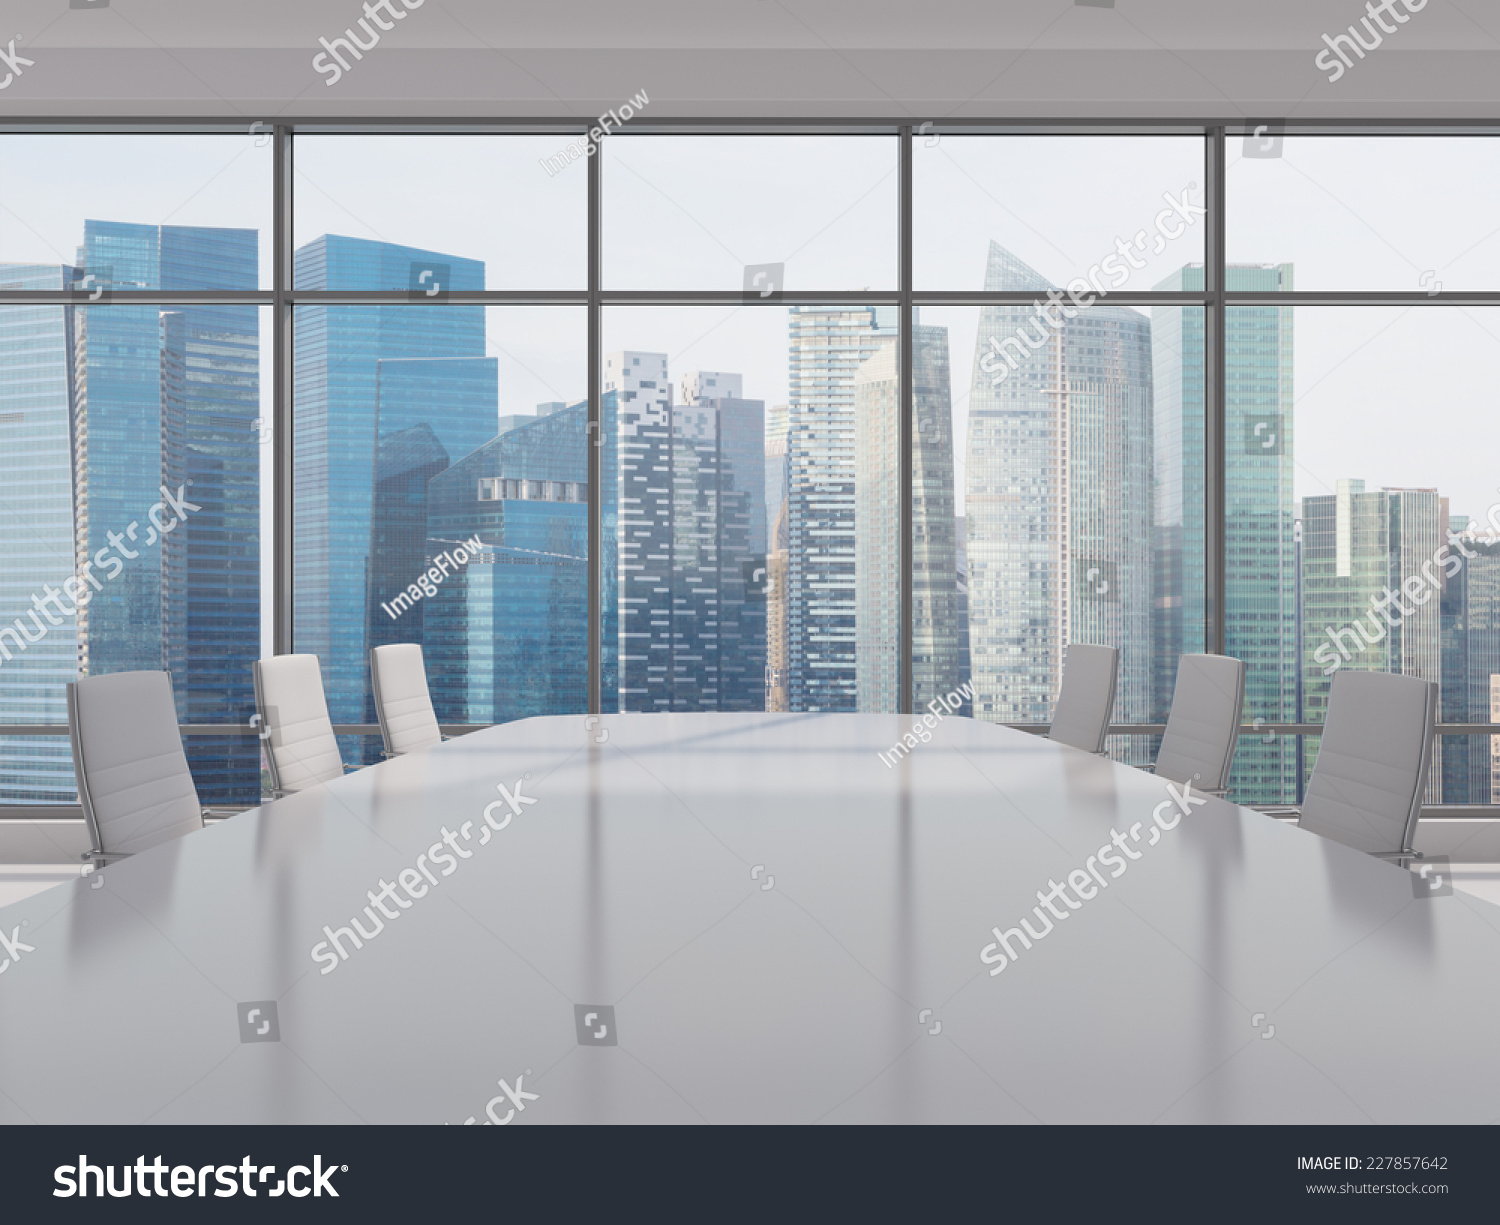 Conference Room Modern Office Windows City Stock Photo 227857642 ...